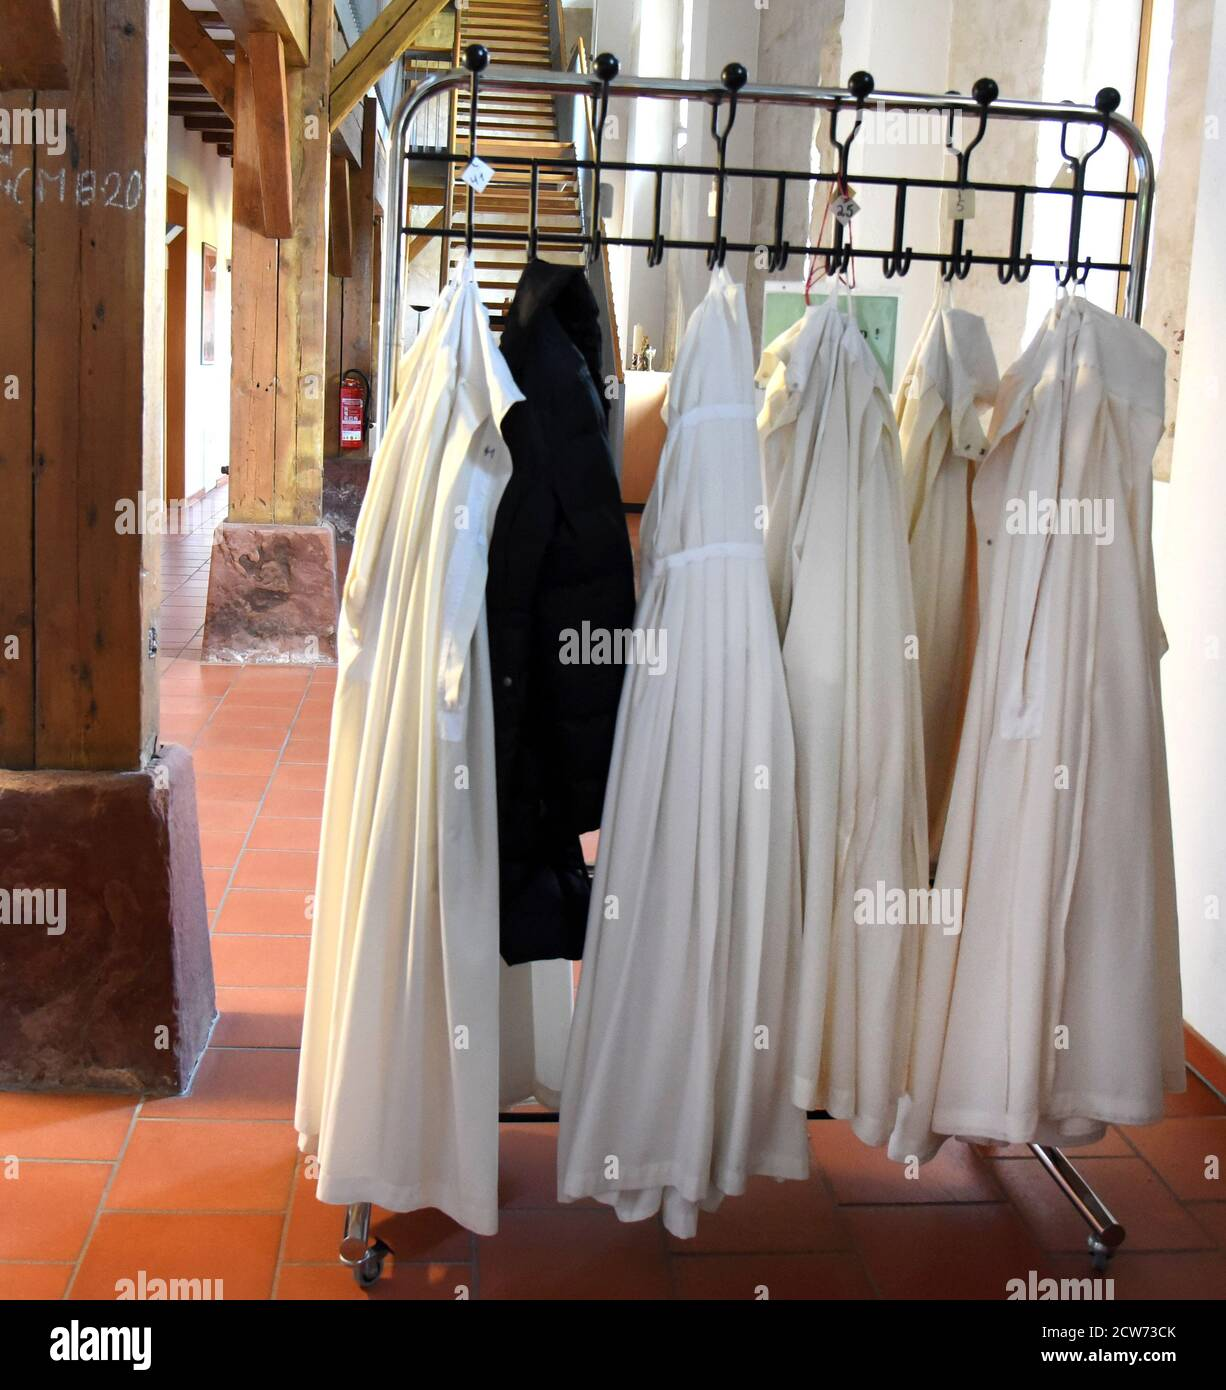 Choir Robes High Resolution Stock Photography And Images Alamy